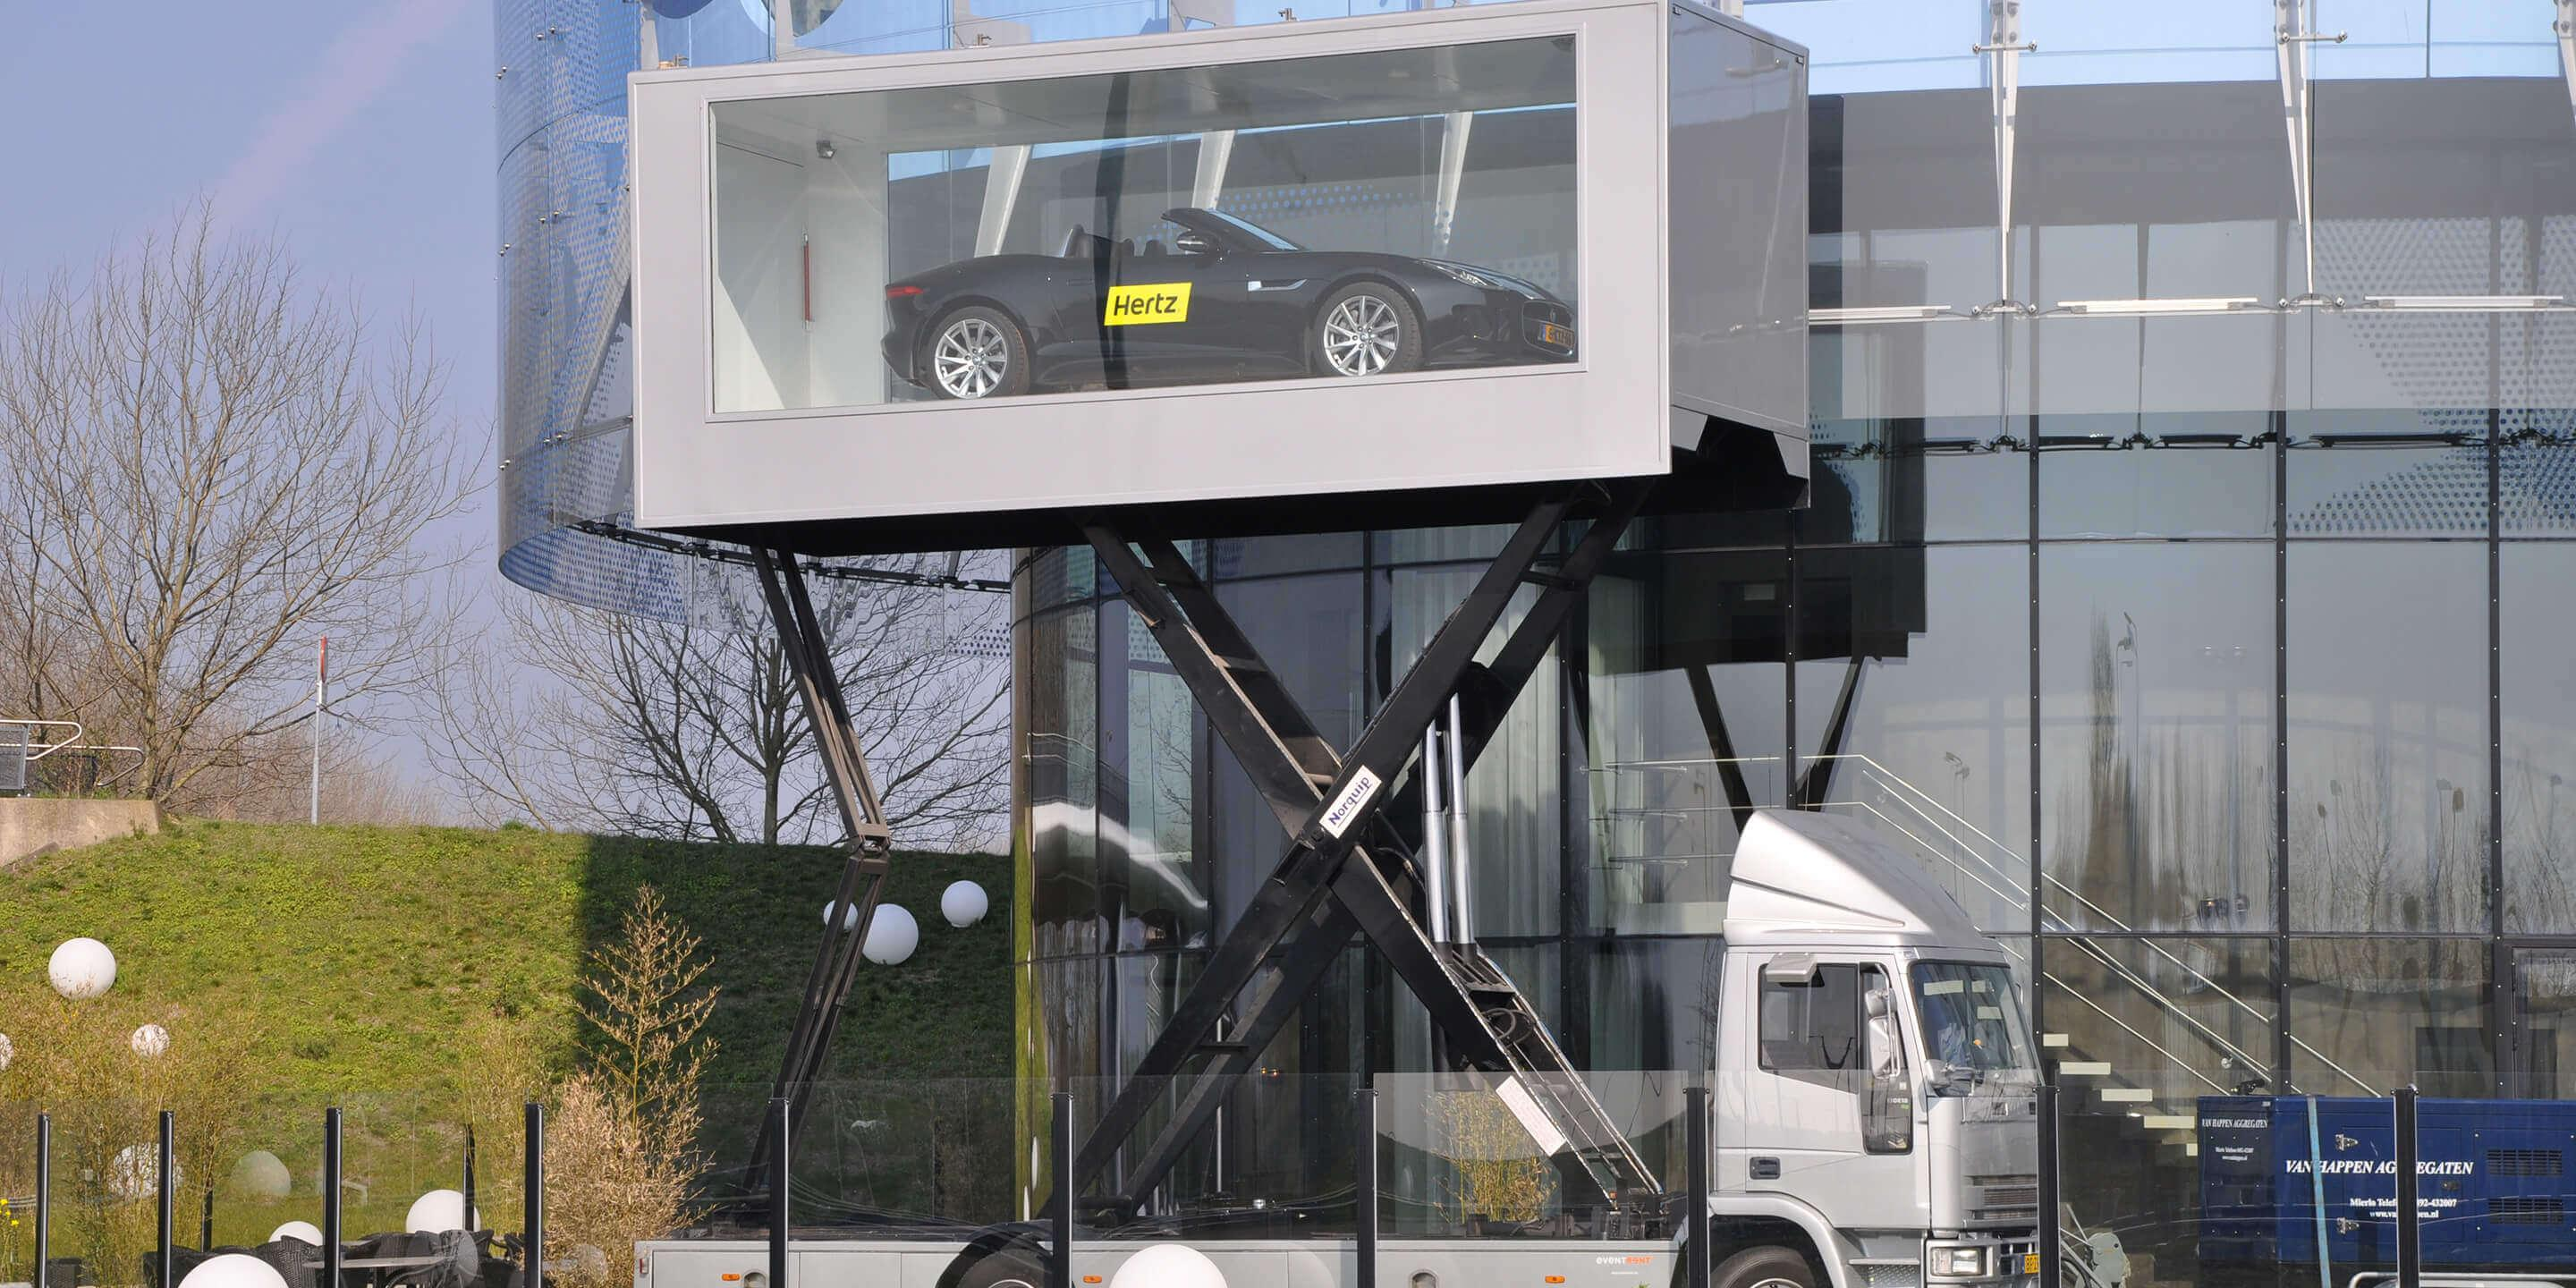 Display Trailers: The Sky Box Mobile Showroom for Hertz